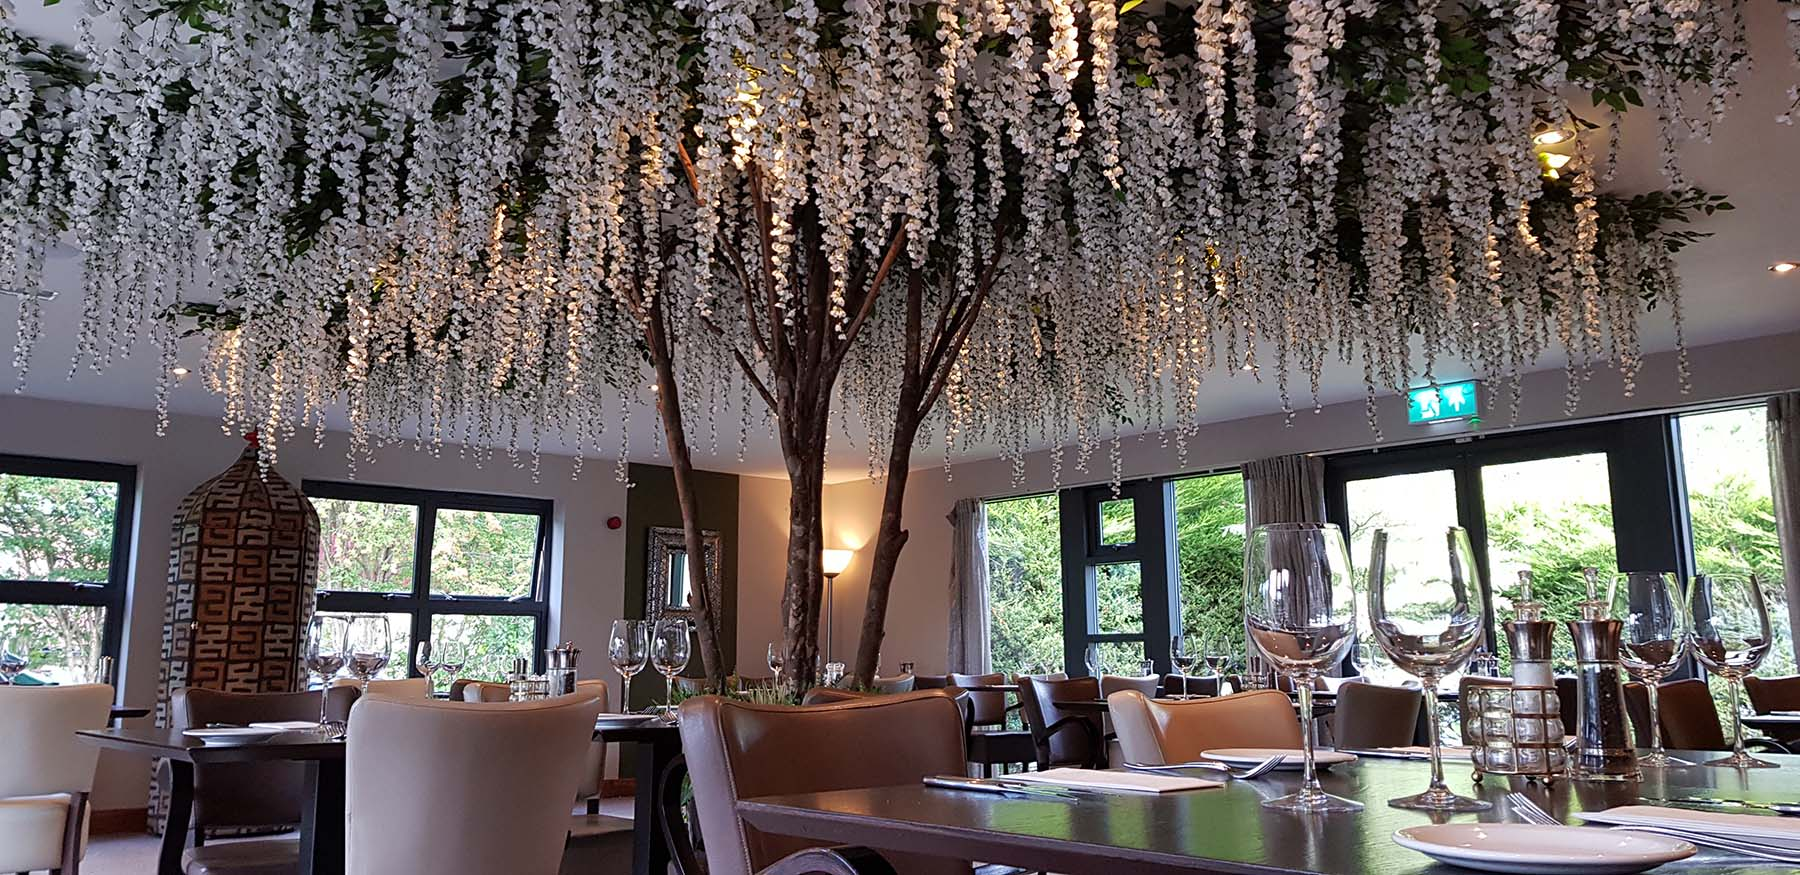 Beautiful Falkirk Restaurant with a huge bespoke artificial wisteria blossom tree creating a stunning centrepiece